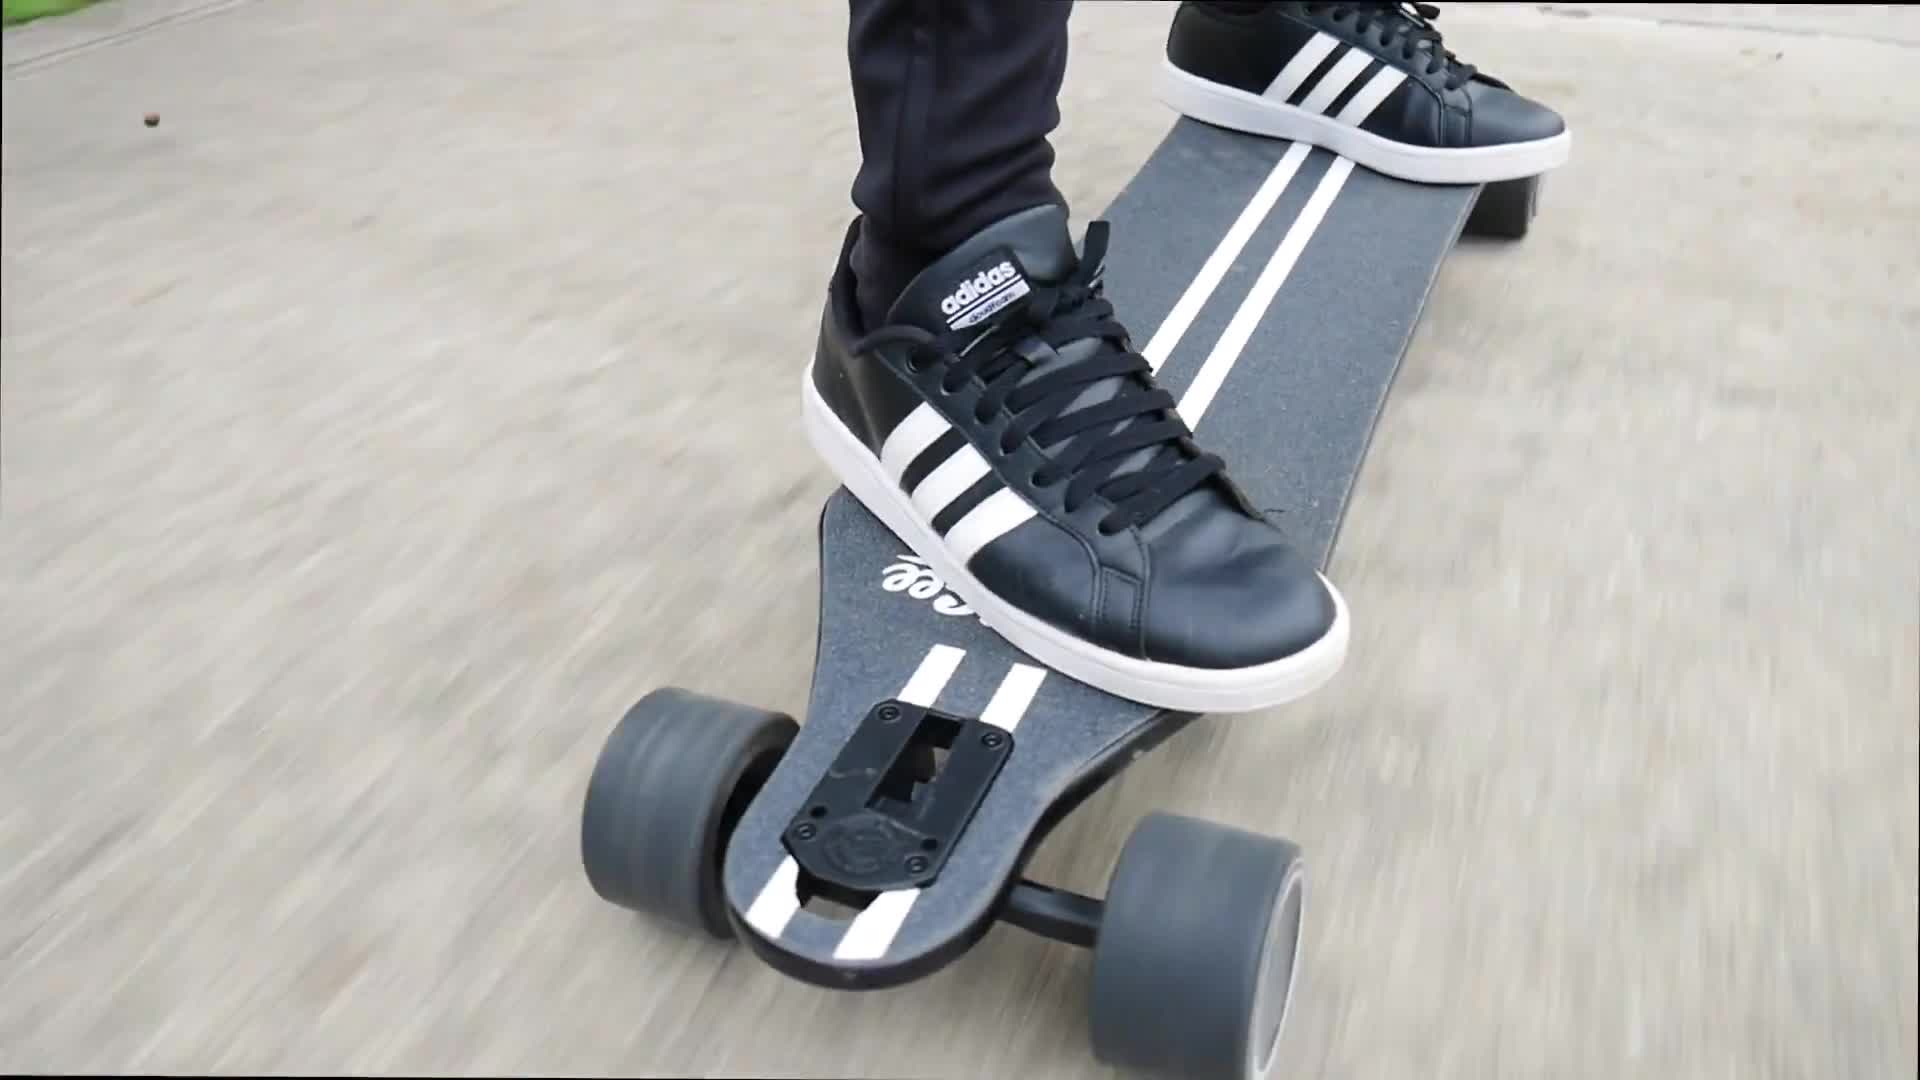 Hot sale 35km/h mountain skateboard Electric longboard